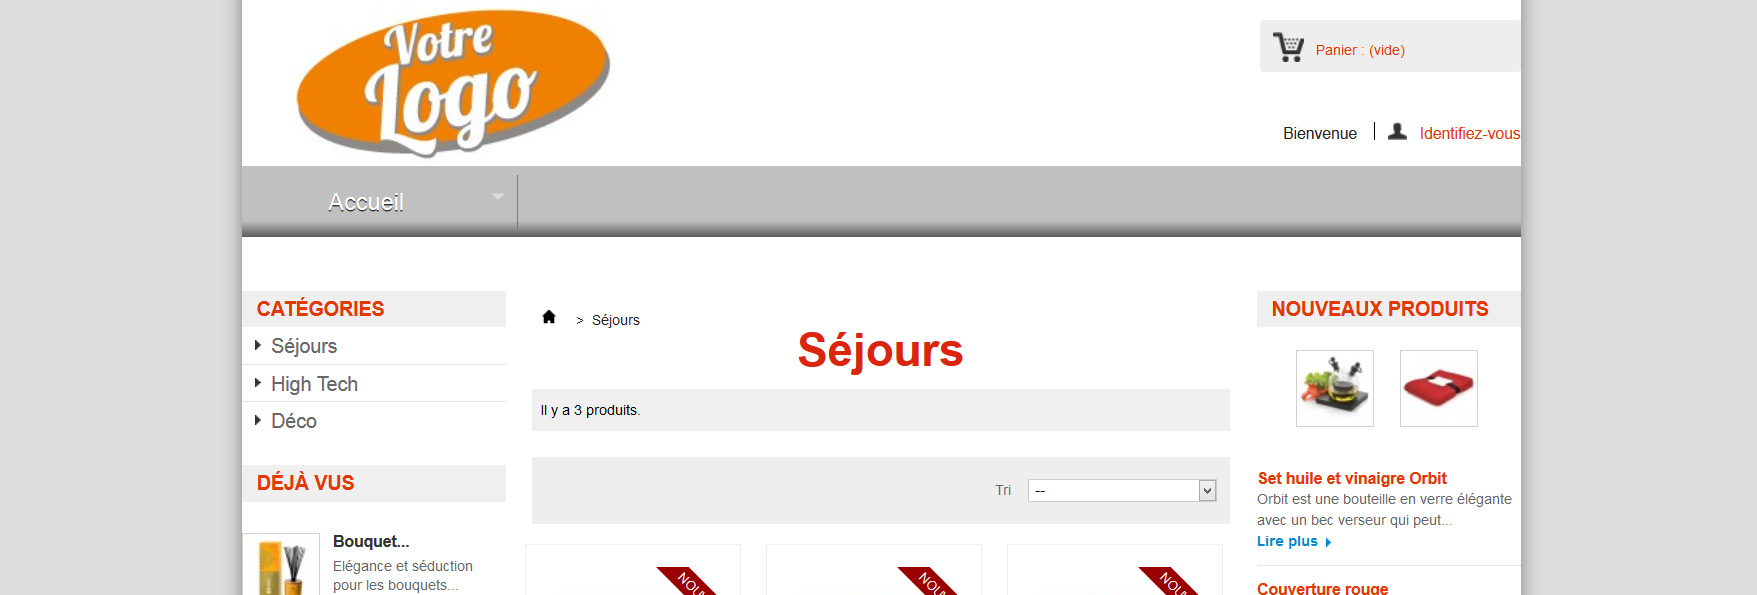 site gestion de catalogue